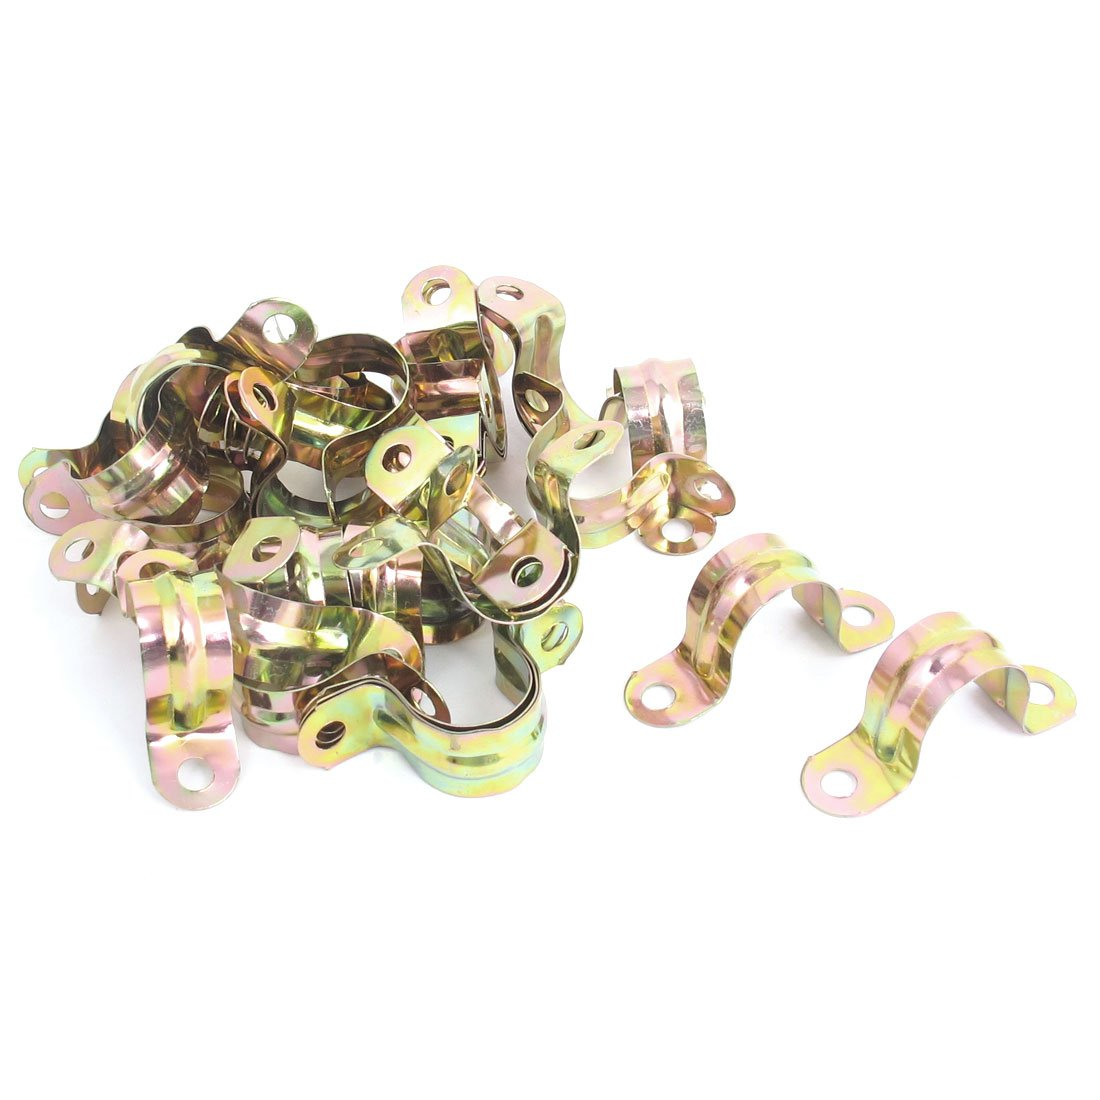 Uxcell a15120400ux0232 20mm Arch High Two Holes U Type Pipe Clamp Clips Bronze Tone 36 Pcs,